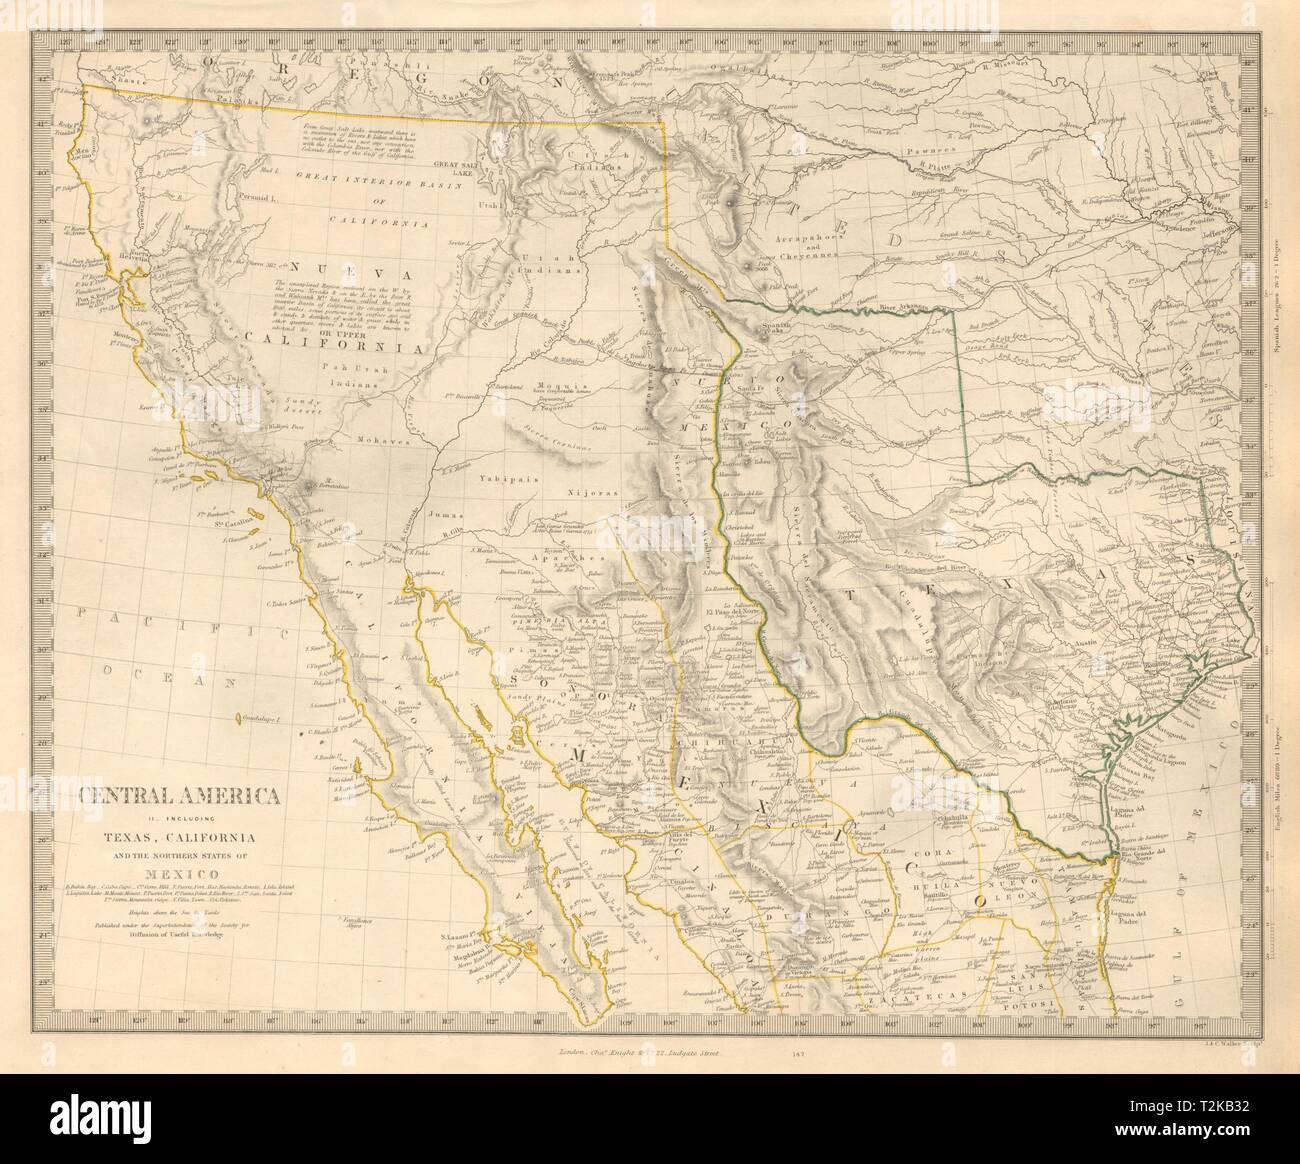 SOUTH WESTERN USA. Showing Republic of Texas & Mexican California. SDUK 1846 map - Stock Image